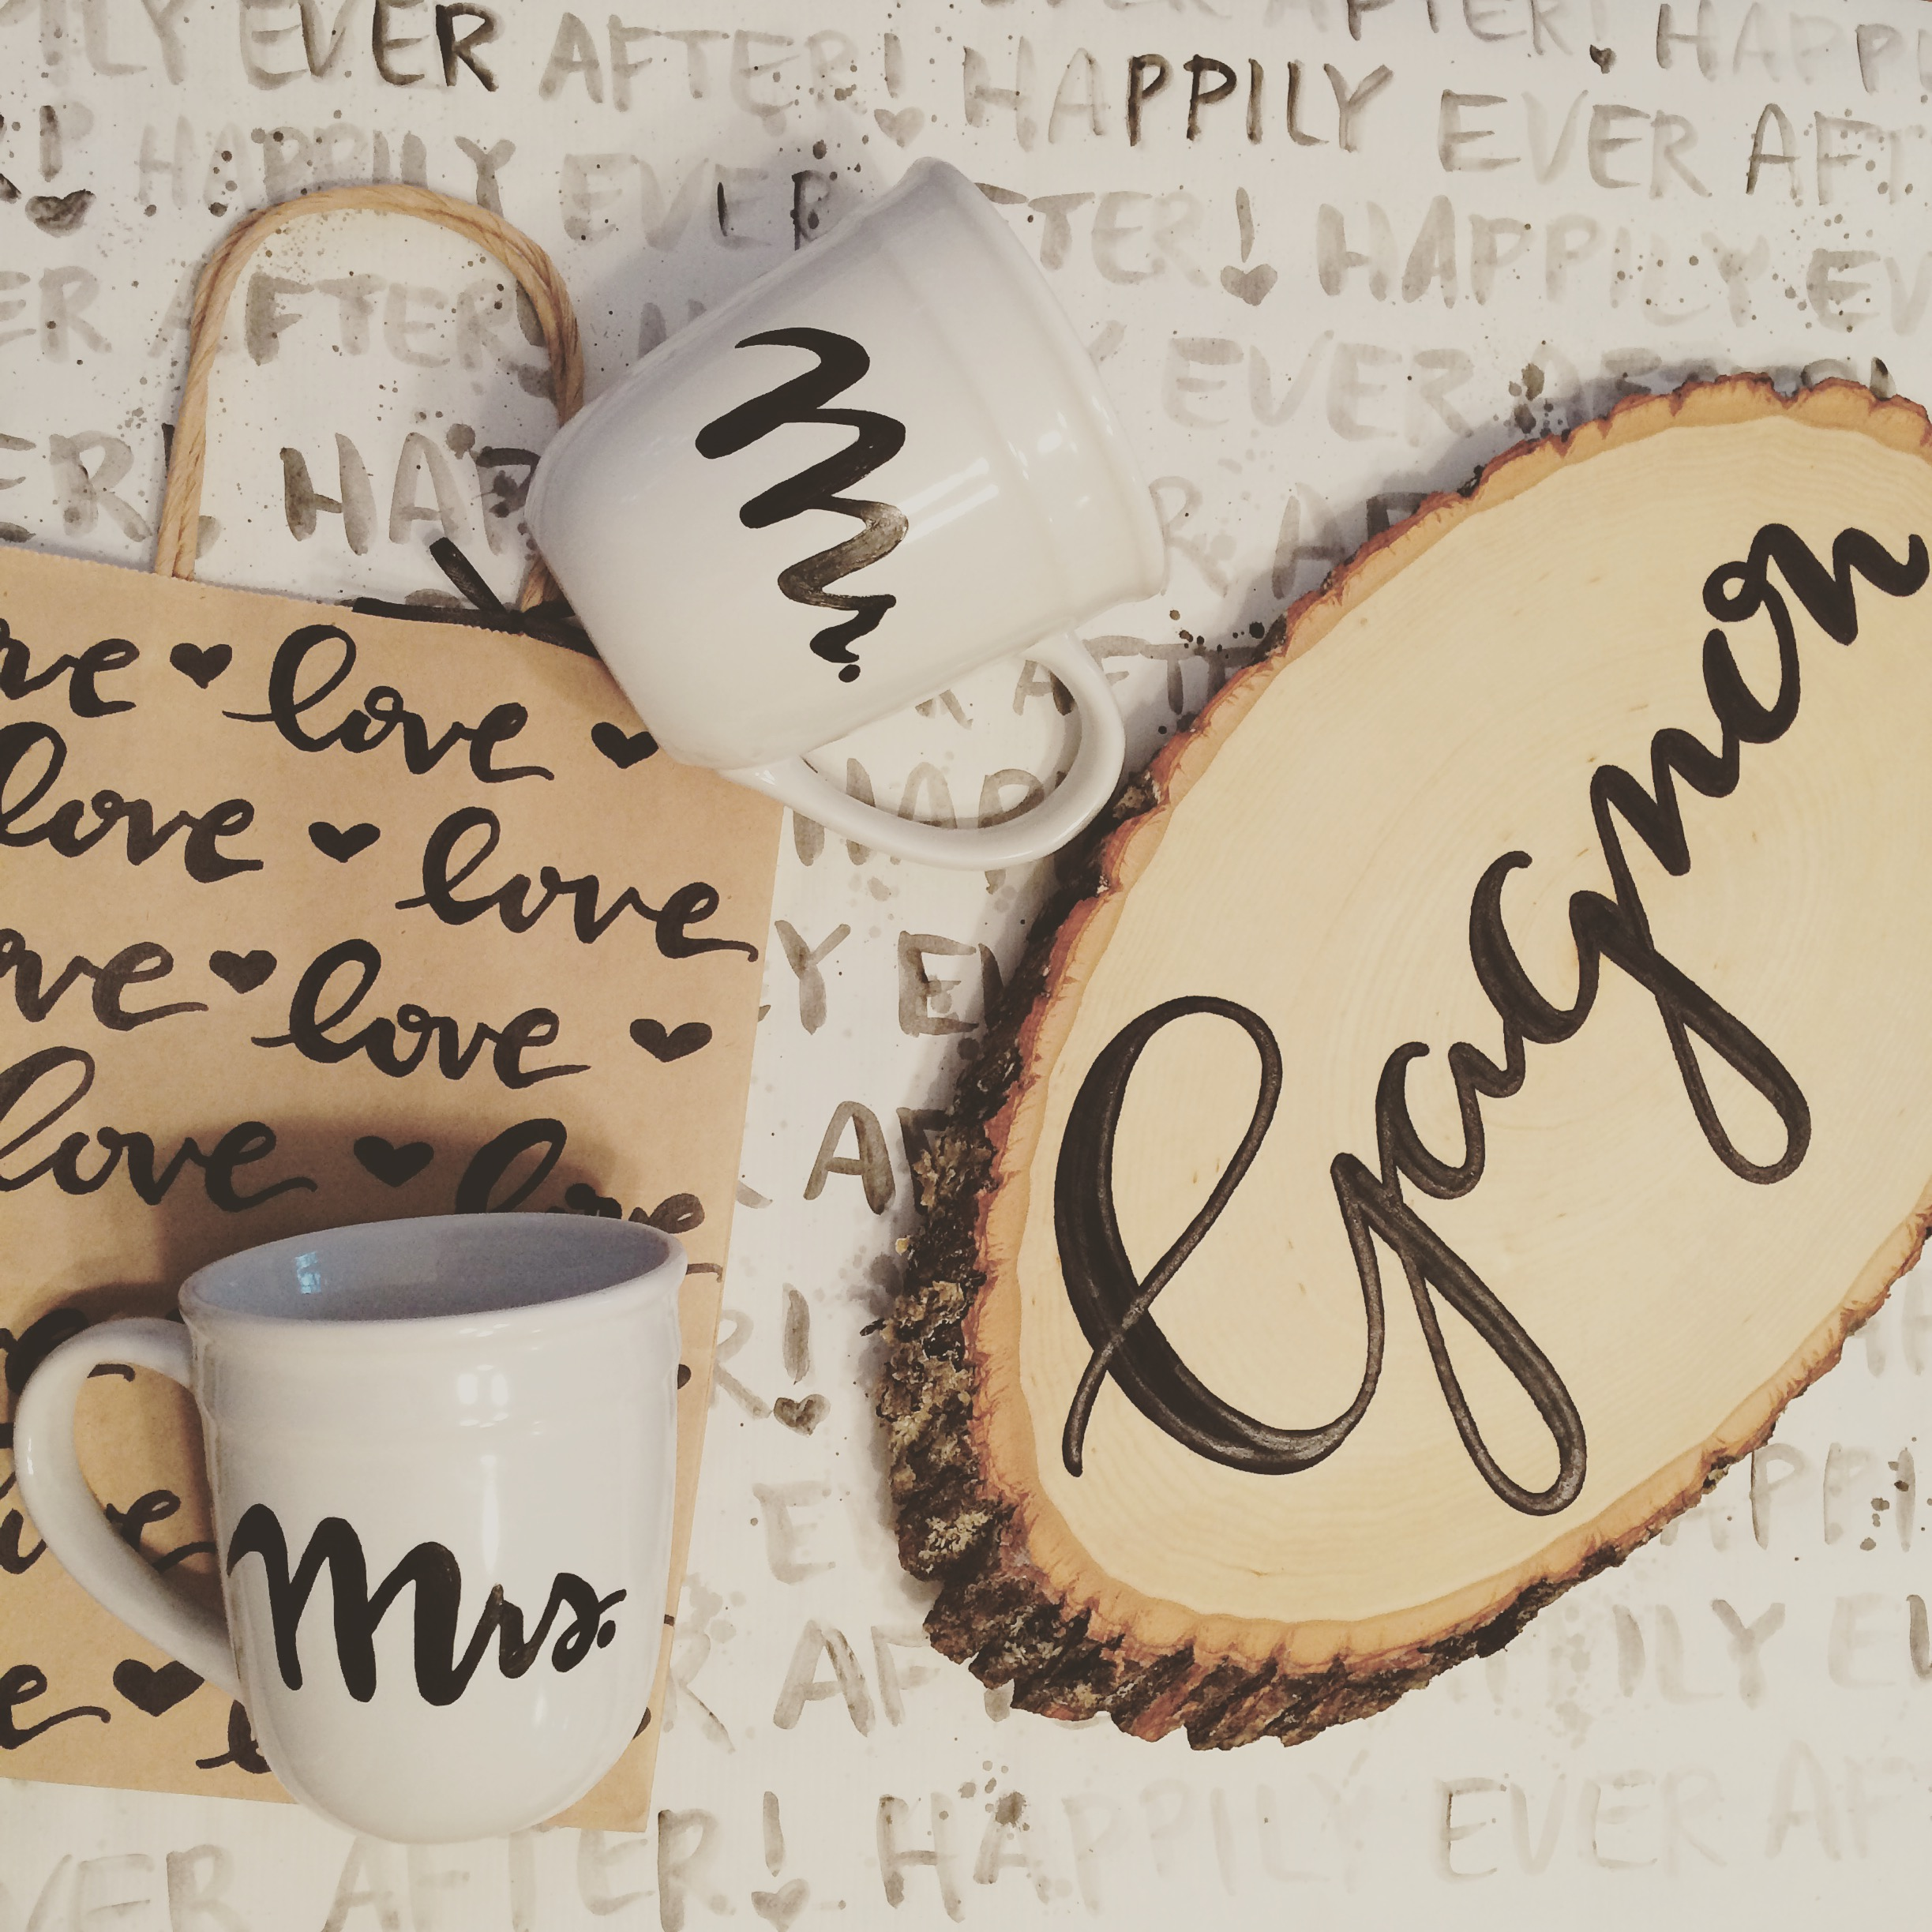 Wooden Signs - Custom hand lettered name signs by Raleigh Calligraphy & Design. Now that you're officially Mr. and Mrs., you can take advantage of these rustic wooden signs to show off your family name and decorate your newlywed nest.